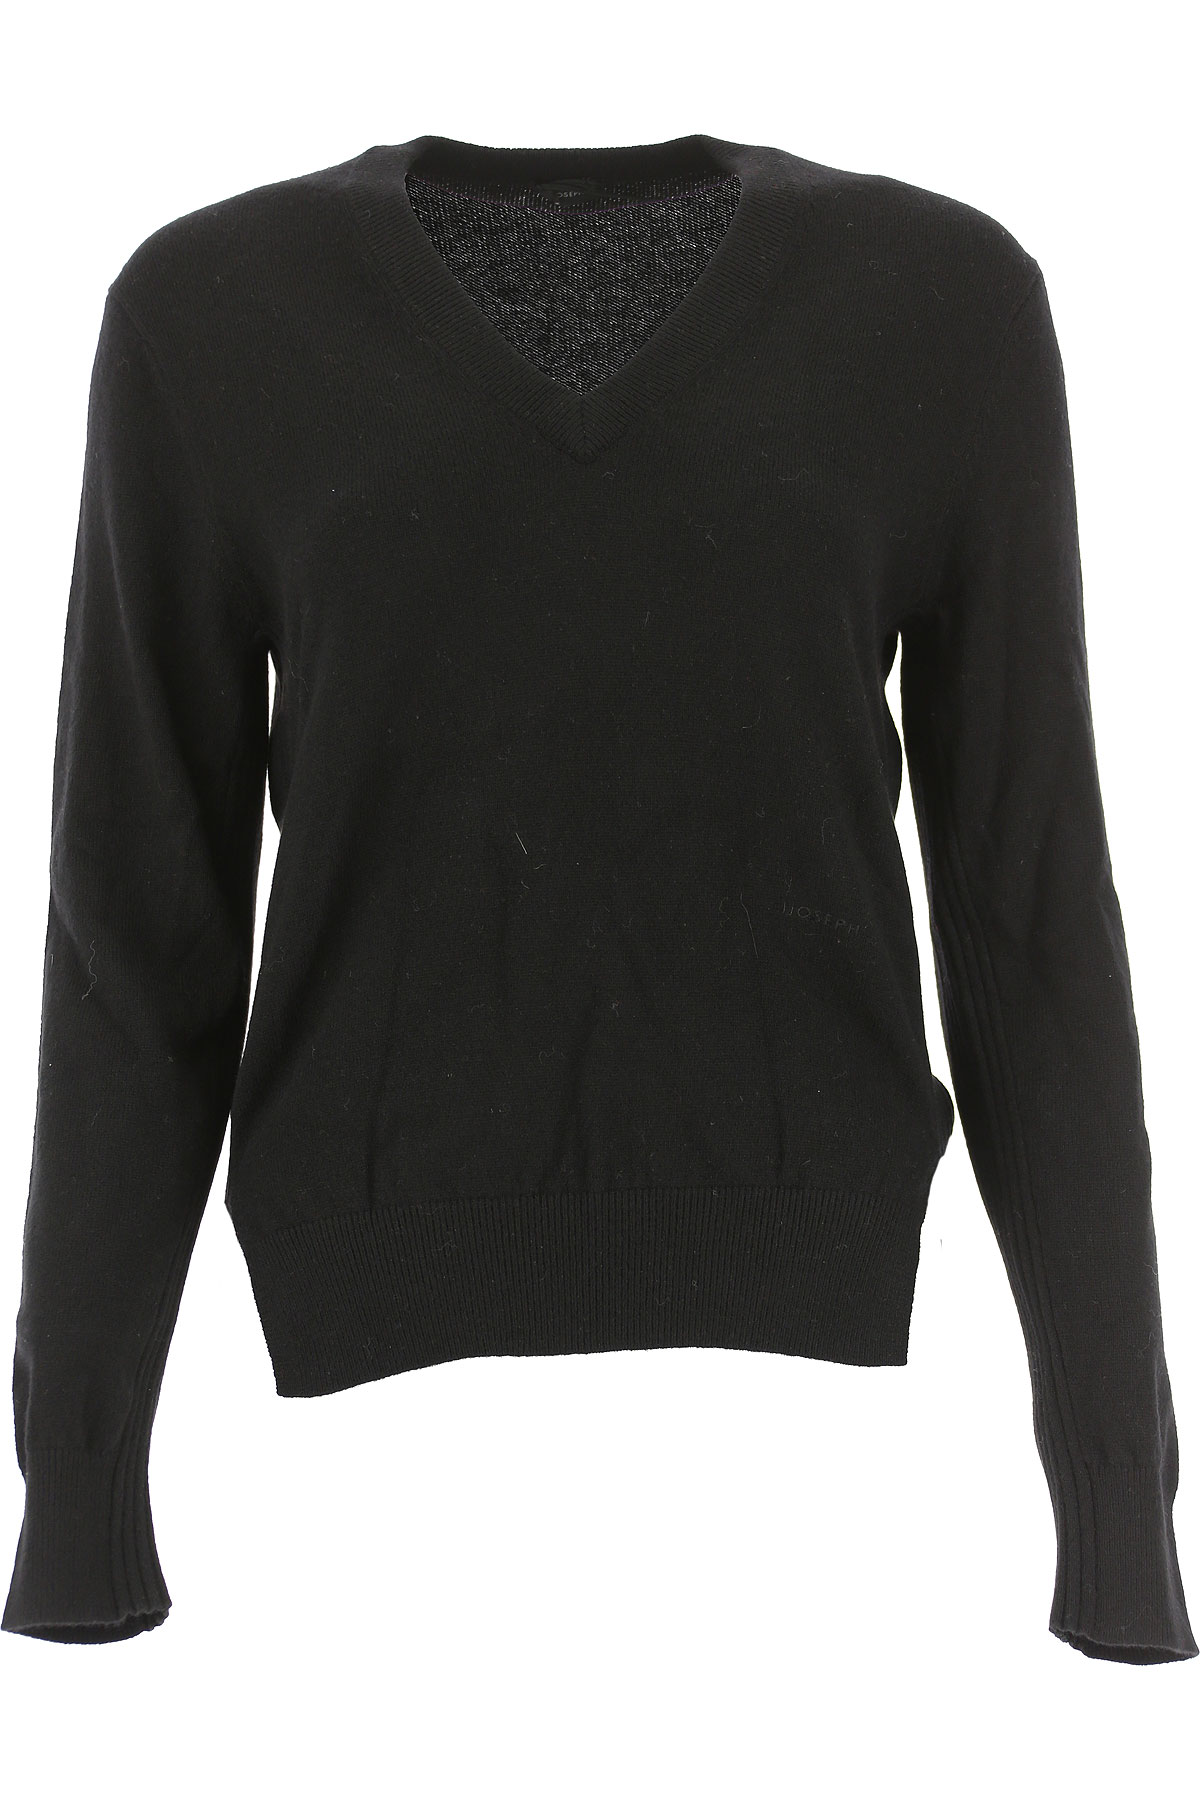 Image of Joseph Sweater for Women Jumper, Black, Cashmere, 2017, 4 6 8